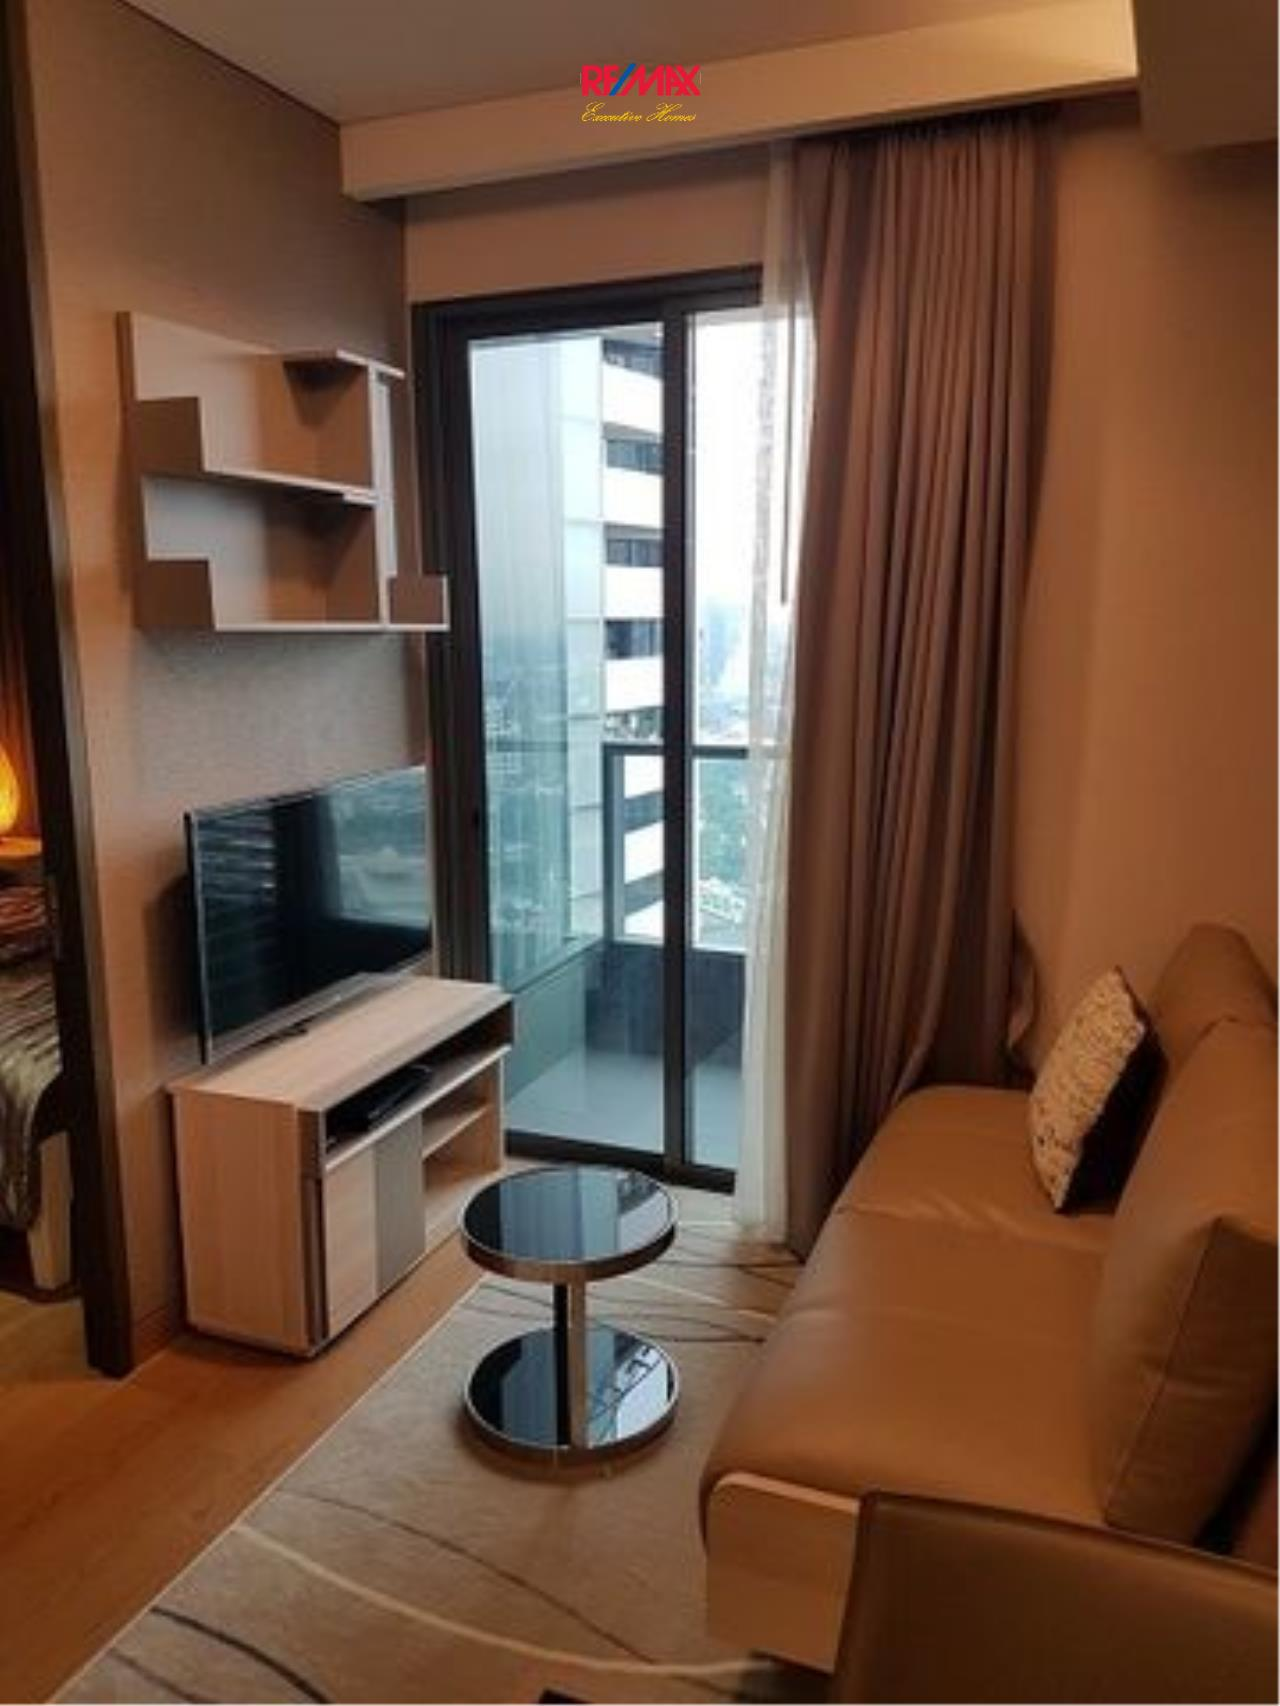 RE/MAX Executive Homes Agency's Nice 1 Bedroom for Rent and Sale Lumpini 24 2